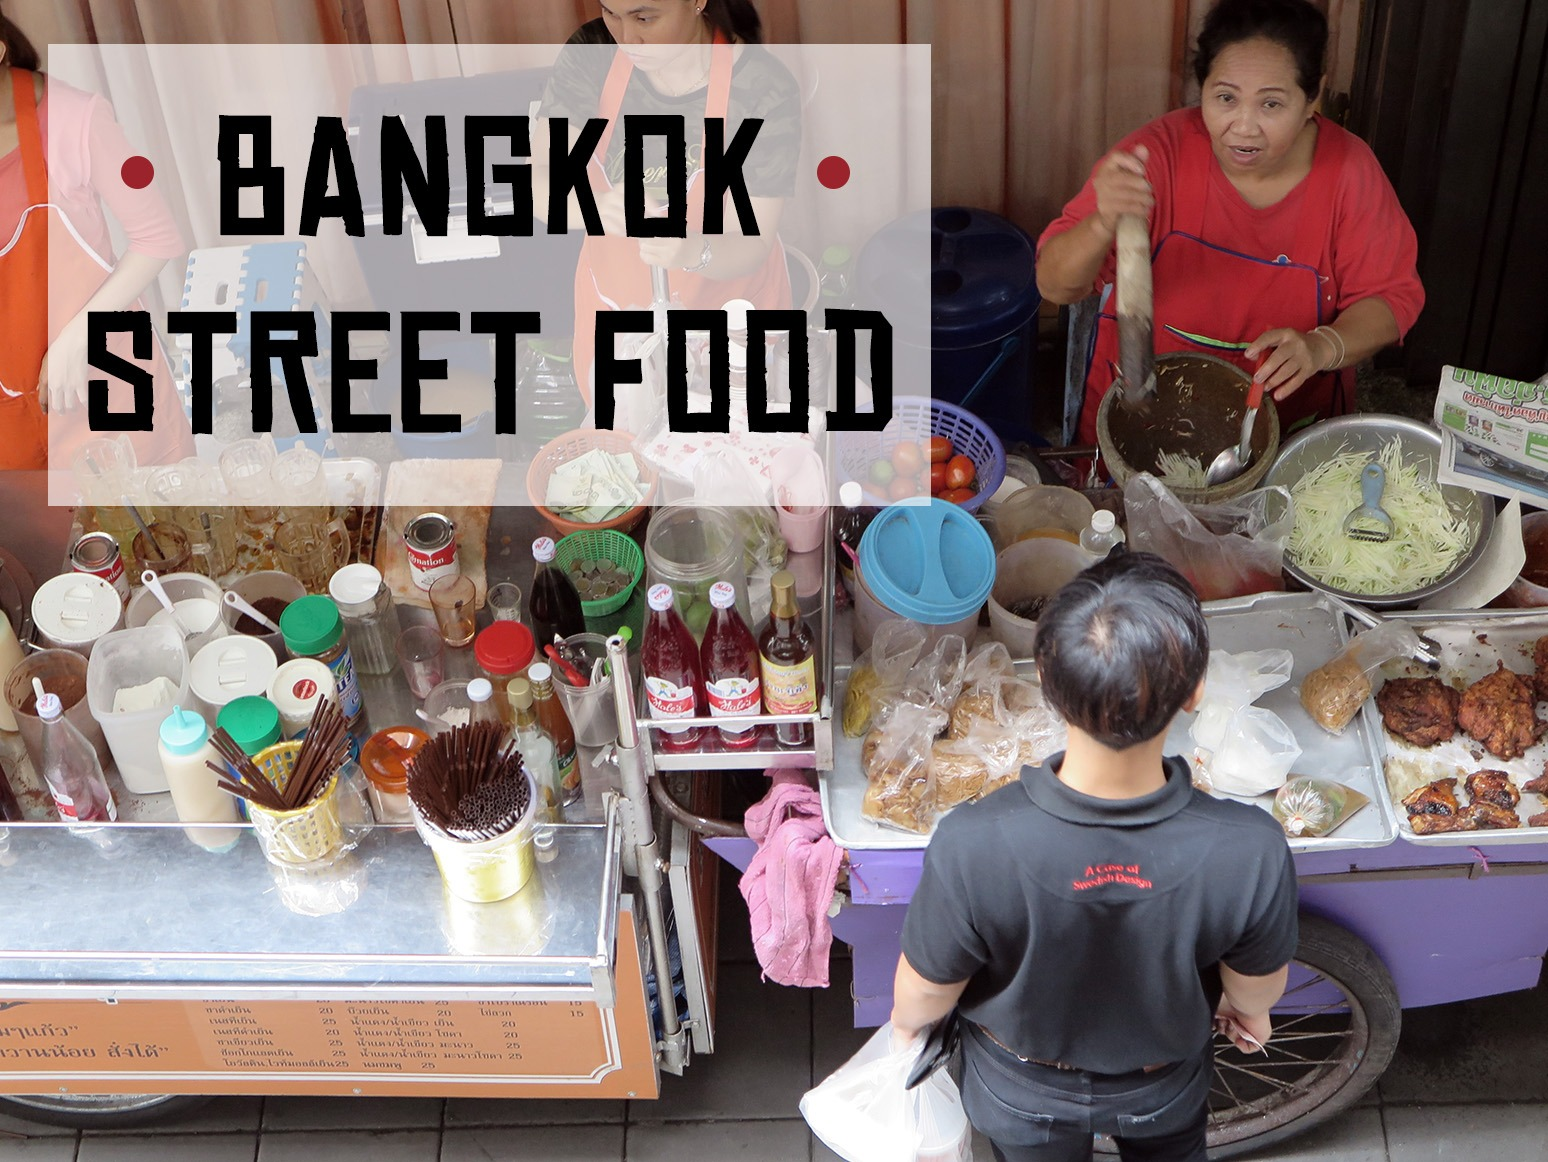 The best food in Bangkok: Street food!